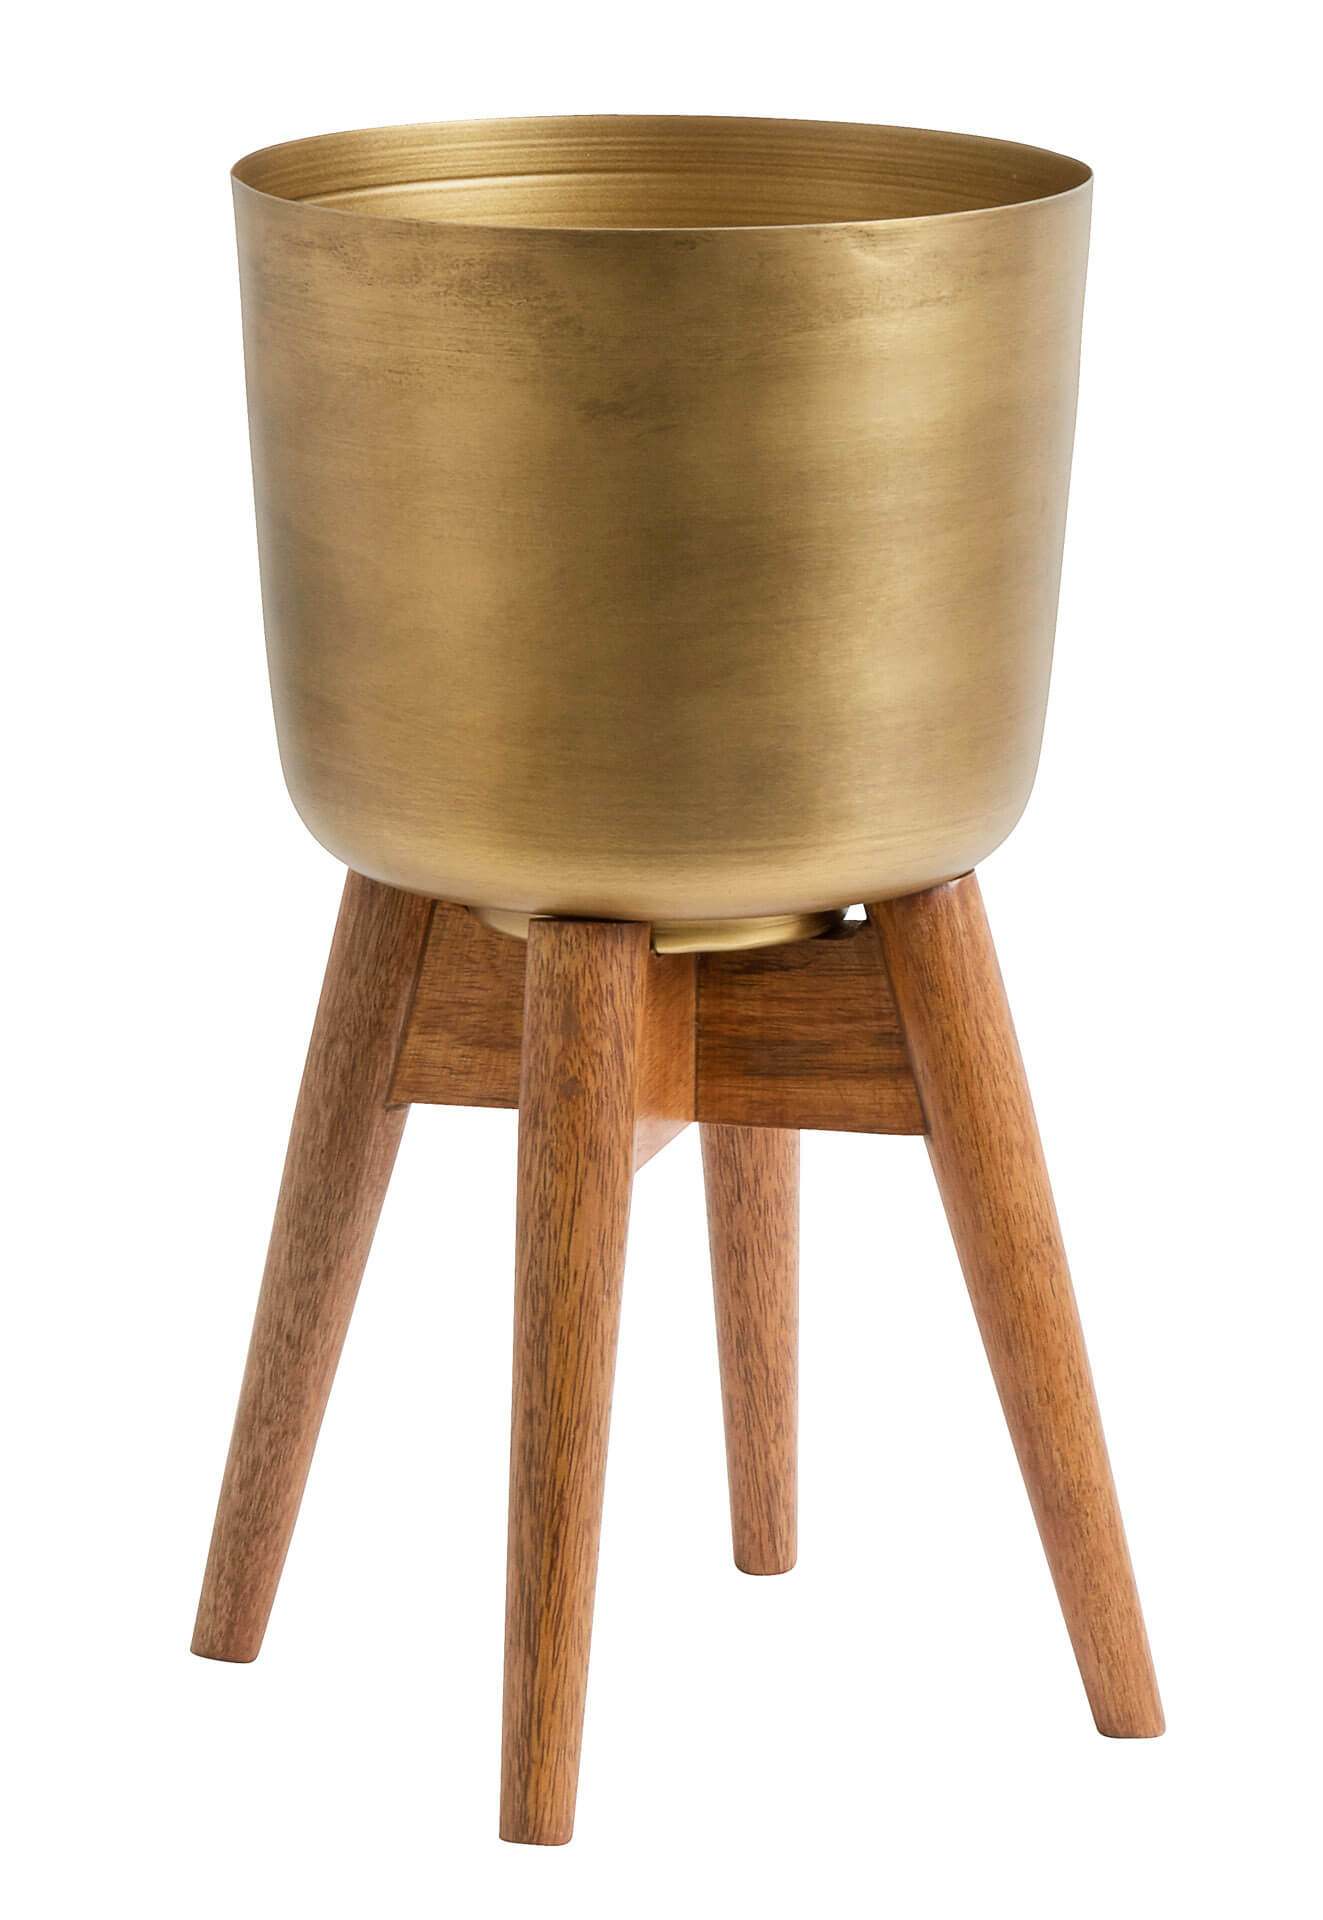 Nordal Planter On Stand Medium Brass/Wood